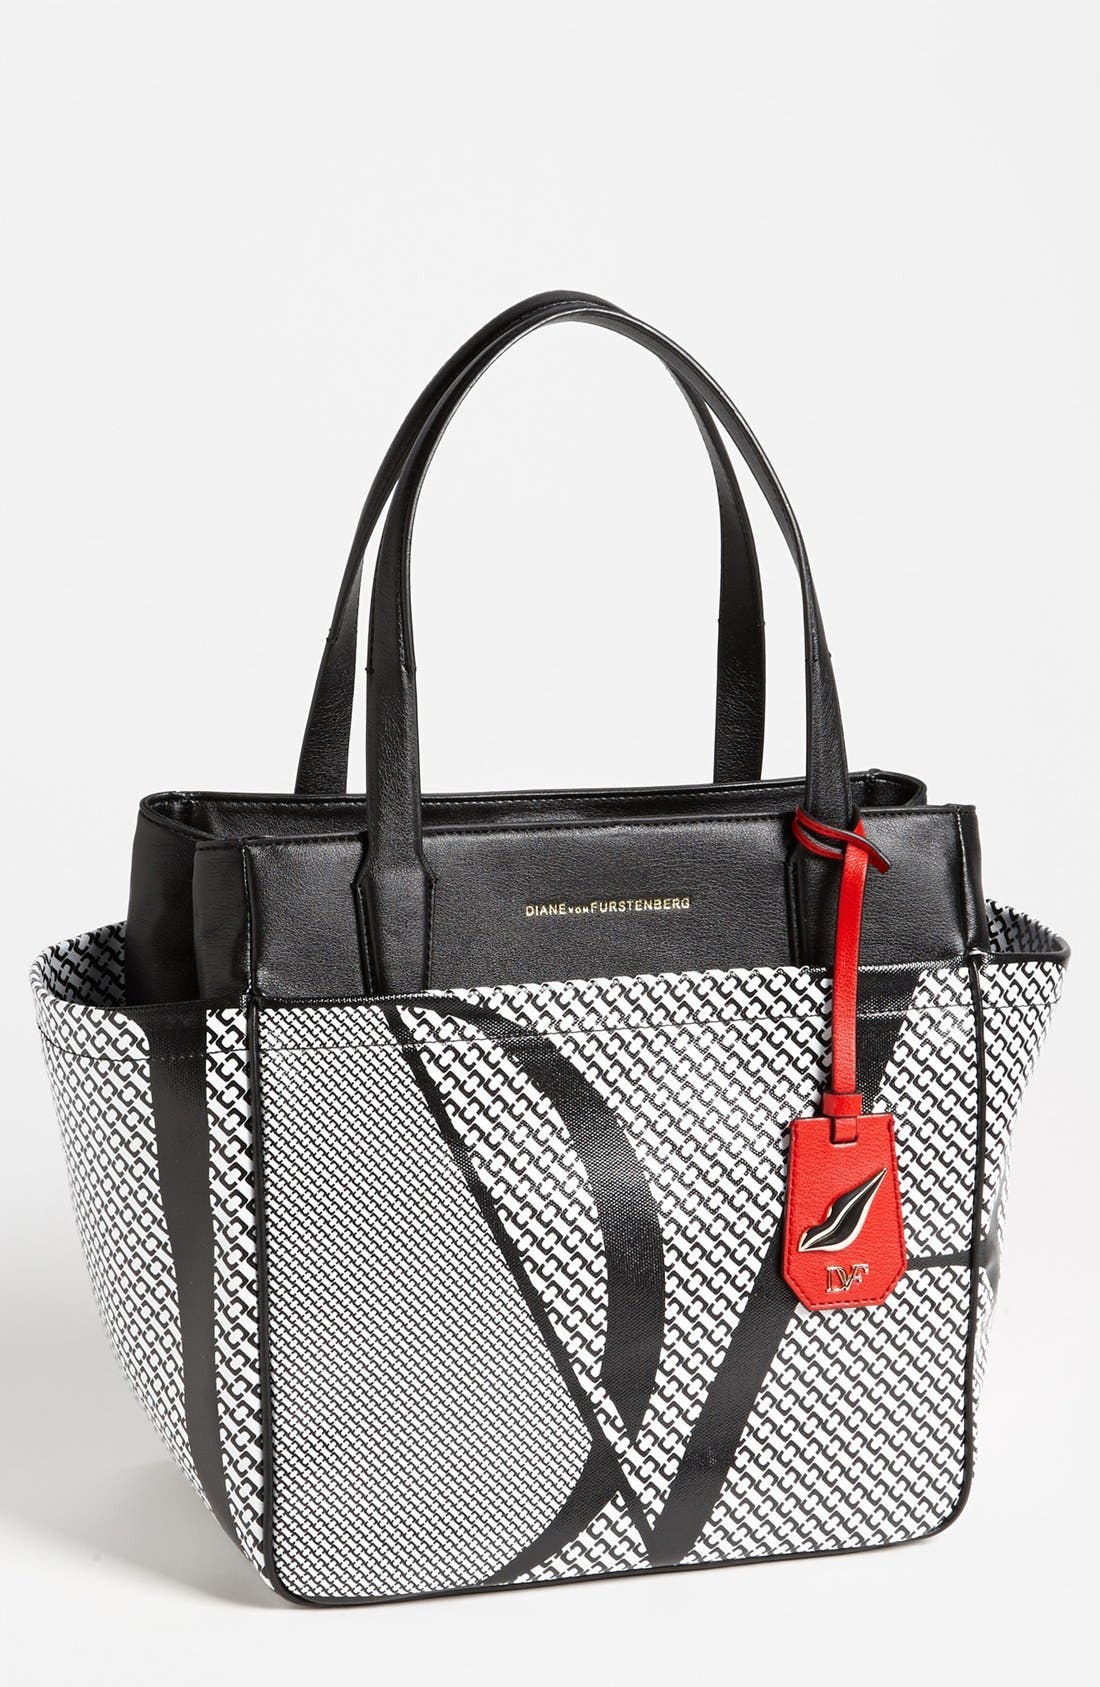 Alternate Image 1 Selected - Diane von Furstenberg 'On the Go' Shoulder Bag